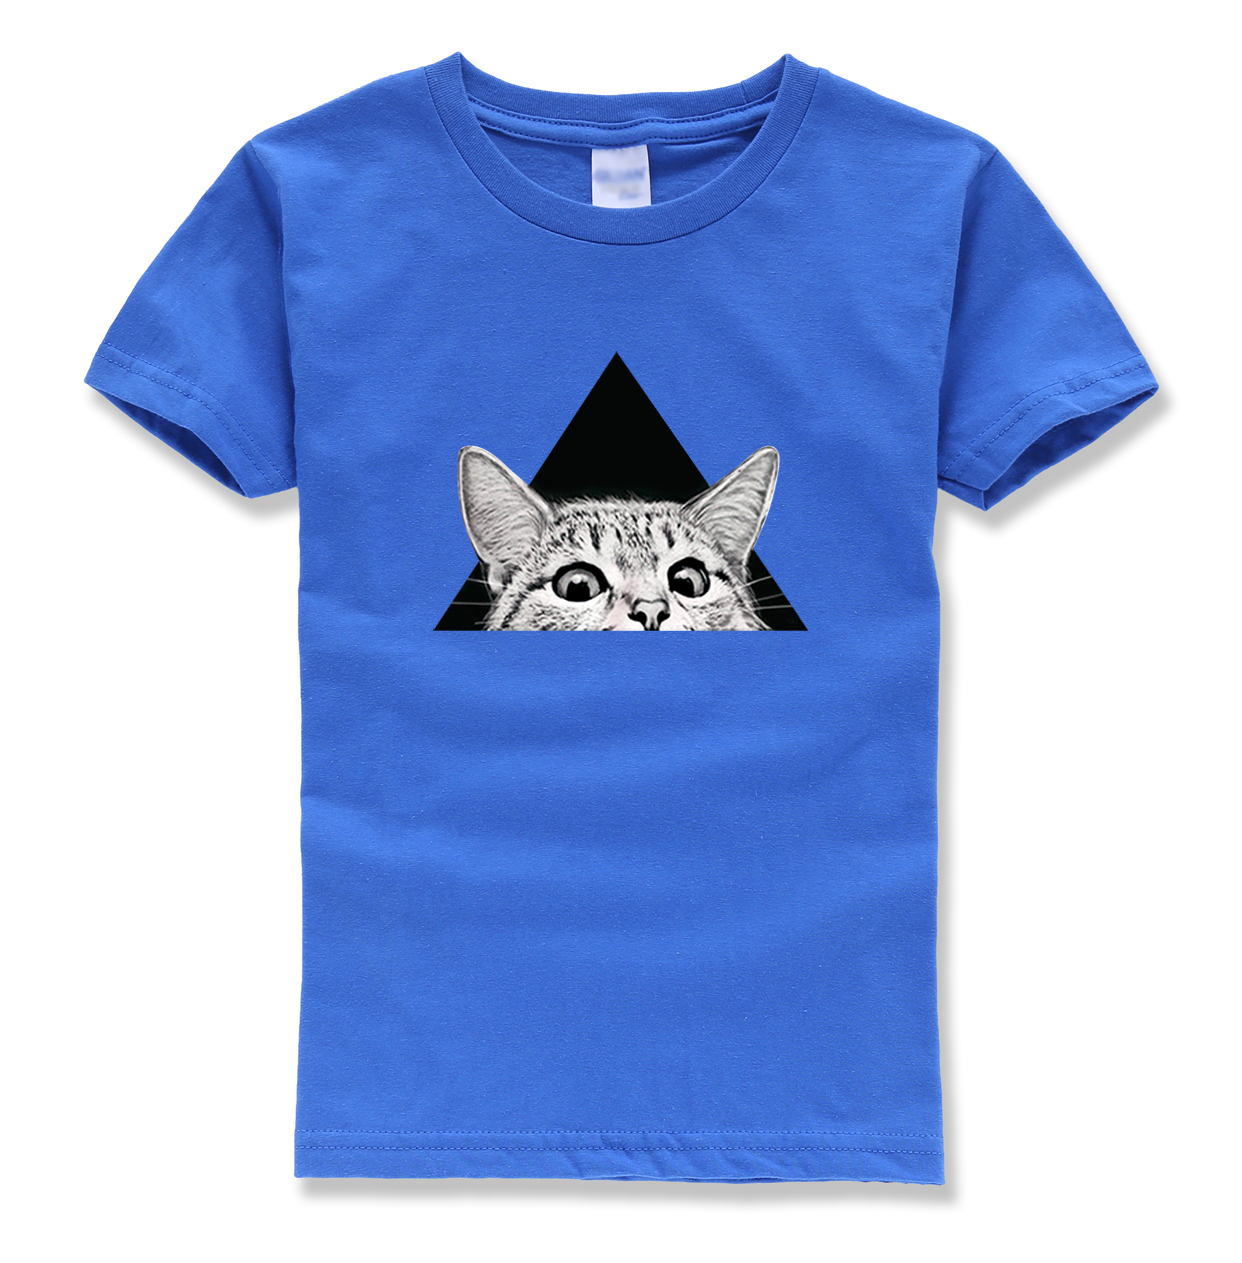 funny cat tops tee shirts summer brand clothing short sleeve 2018 new fashion kids o neck cotton t-shirts chikdren clothes mmafunny cat tops tee shirts summer brand clothing short sleeve 2018 new fashion kids o neck cotton t-shirts chikdren clothes mma